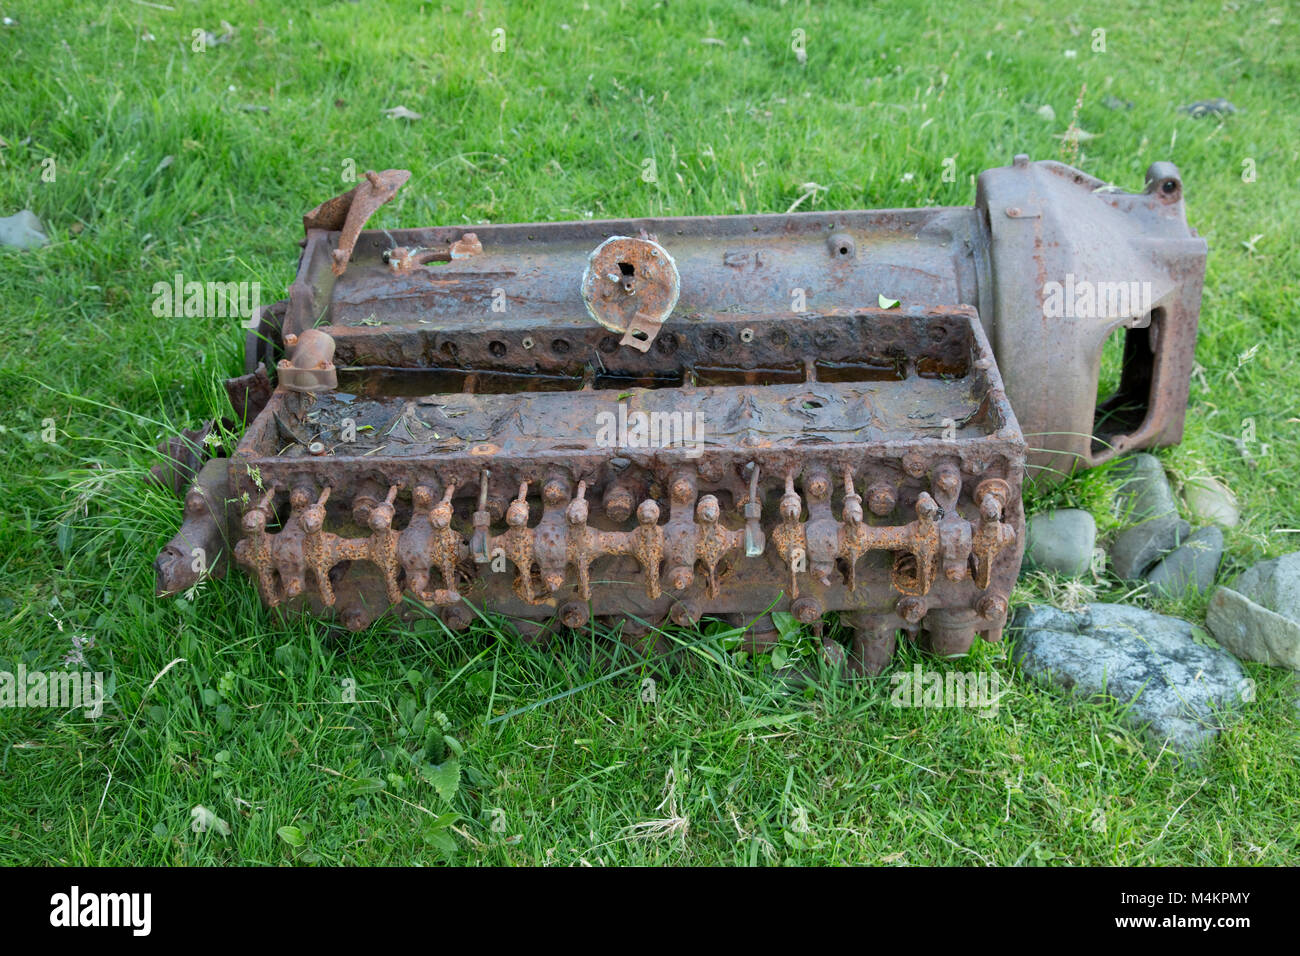 Old engine block rusting in field Scotland UK - Stock Image